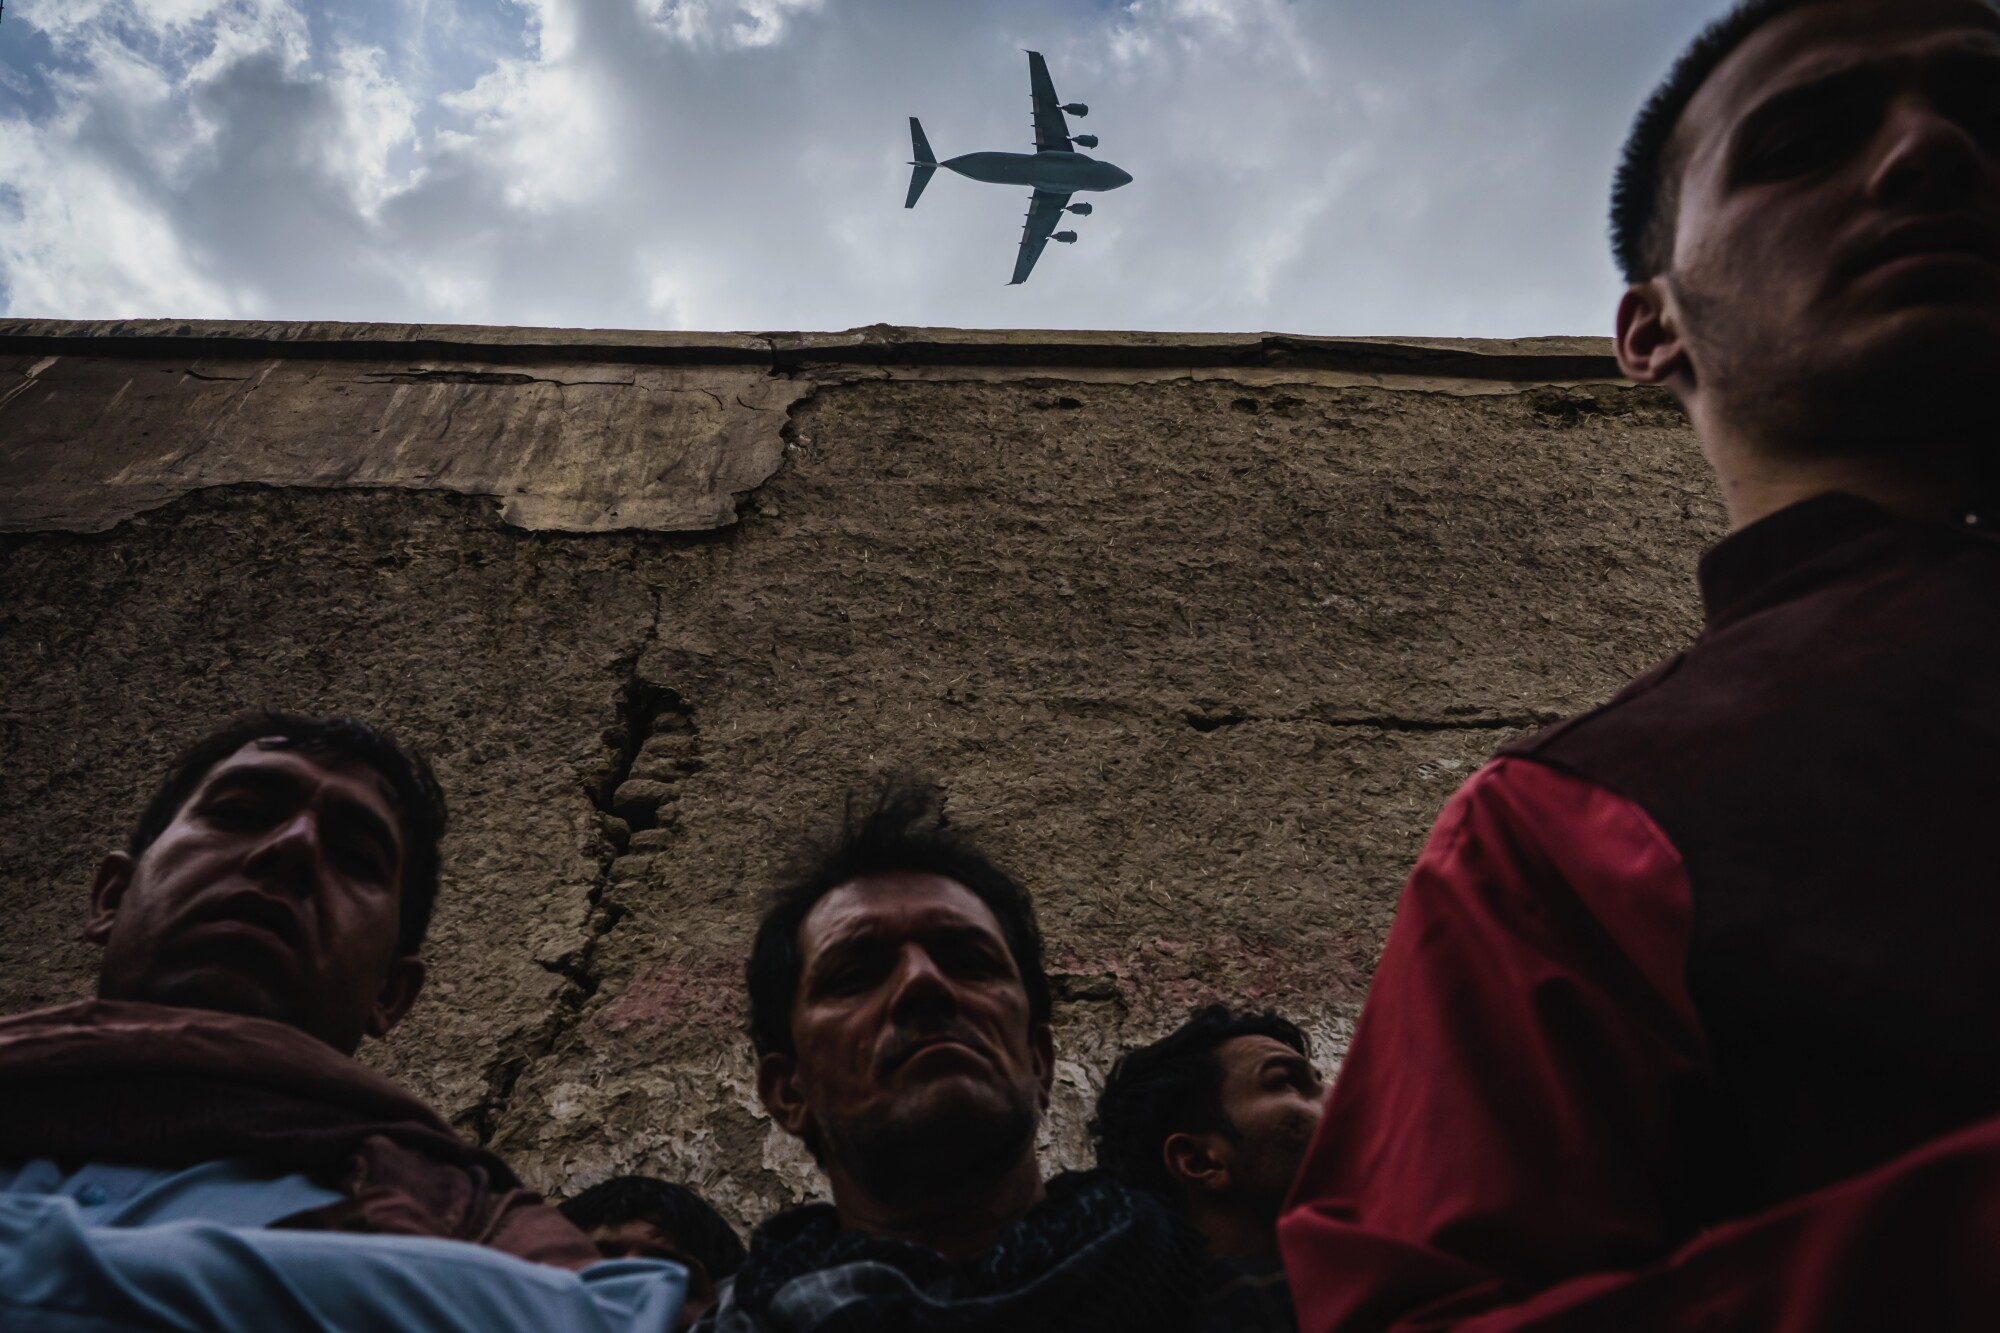 A military transport plane flies over an Afghan family